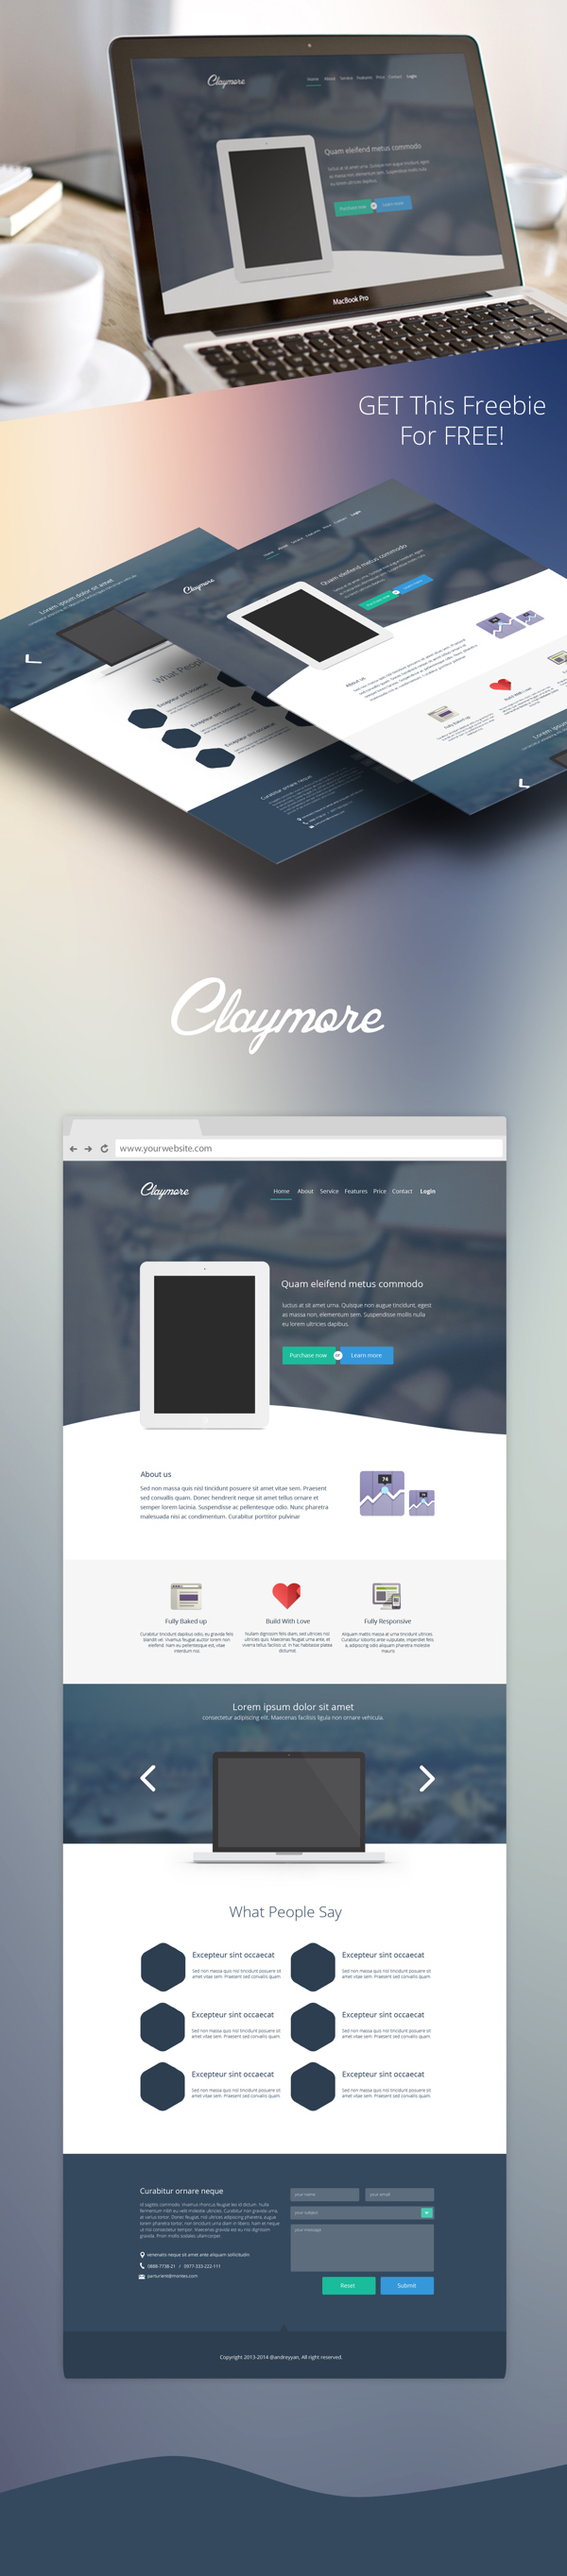 claymore free psd app landing page free psd templates pinterest app mockup and ui ux. Black Bedroom Furniture Sets. Home Design Ideas